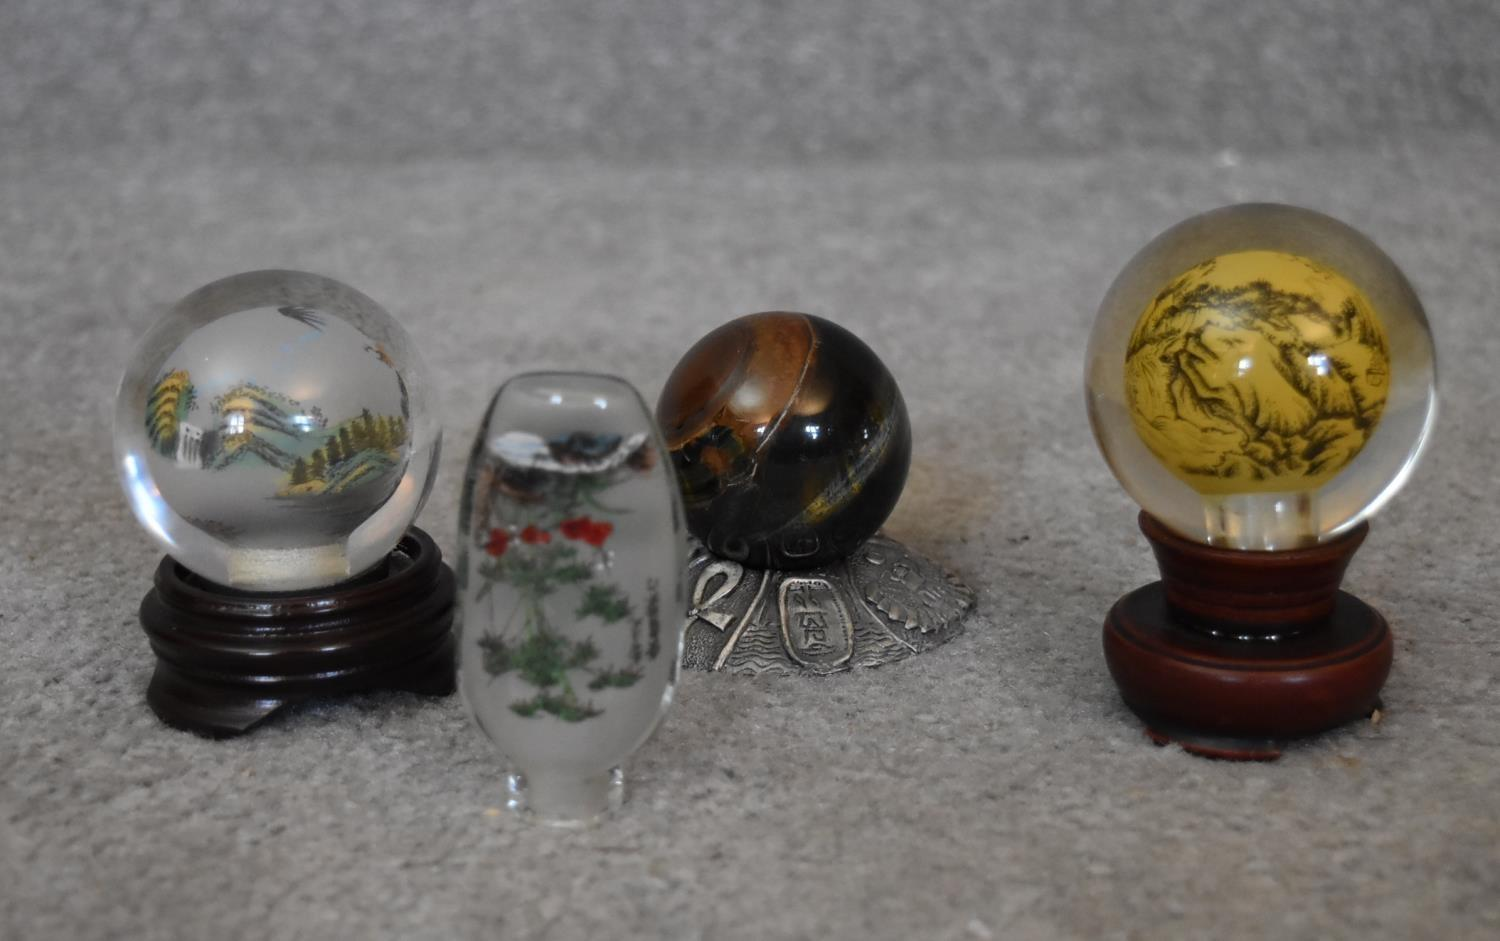 Two Japanese reverse painted globes with Japanese mountains and landscapes, a Japanese reverse